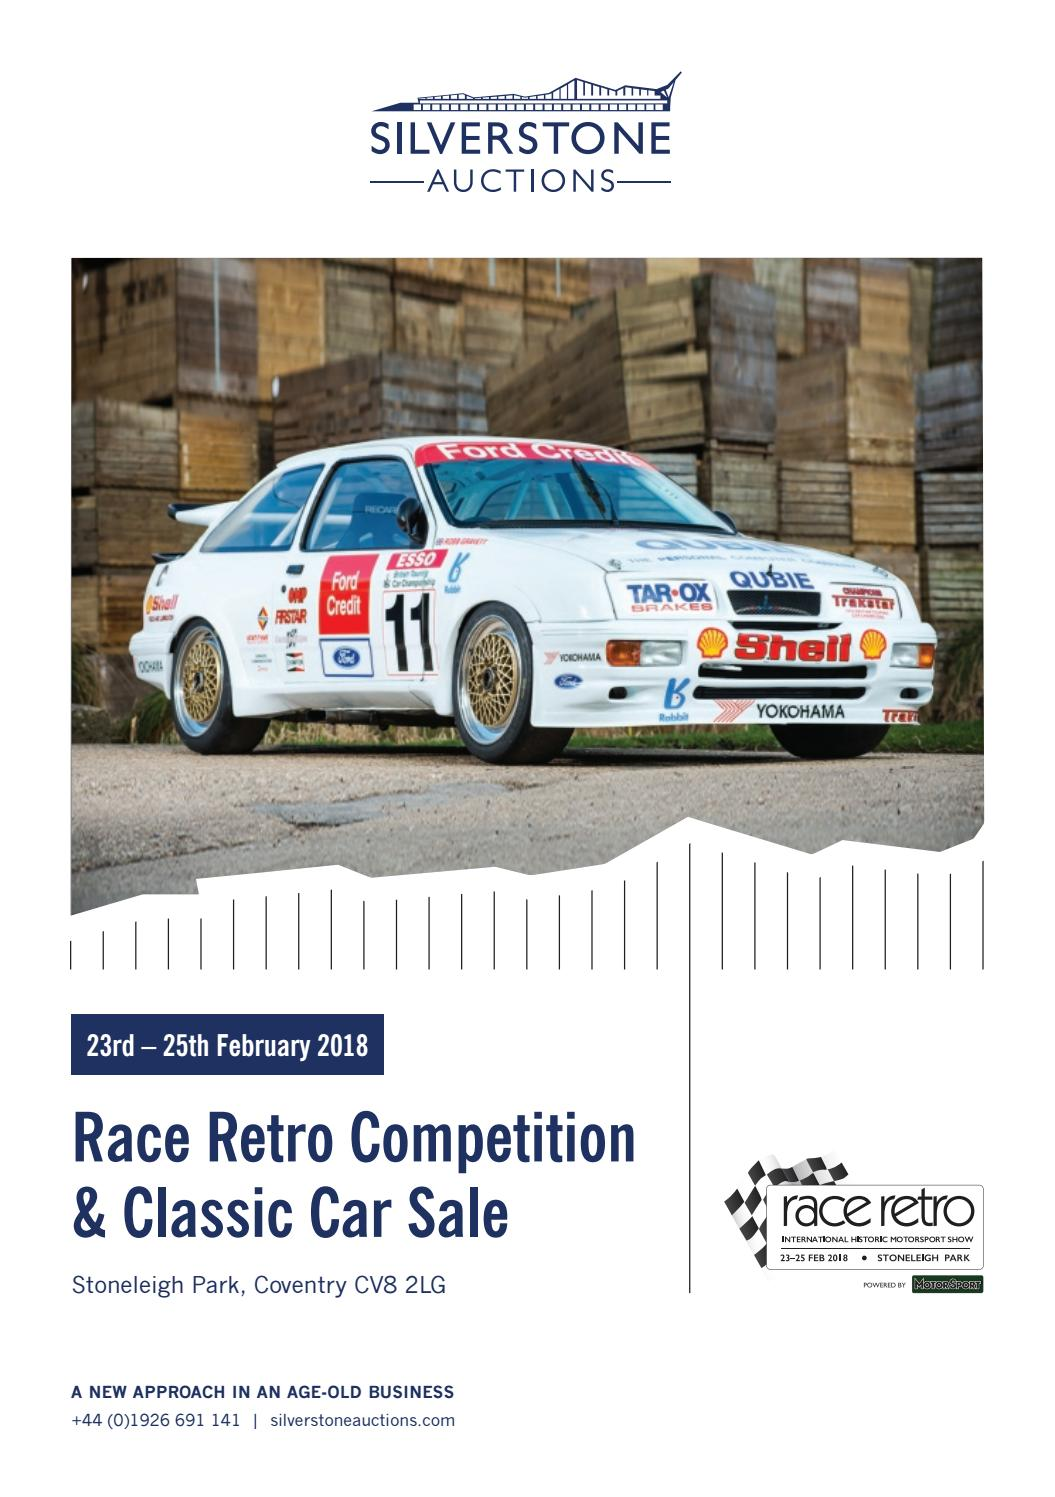 Old Car For Sale >> Silverstone Auctions Race Retro Competition Classic Car